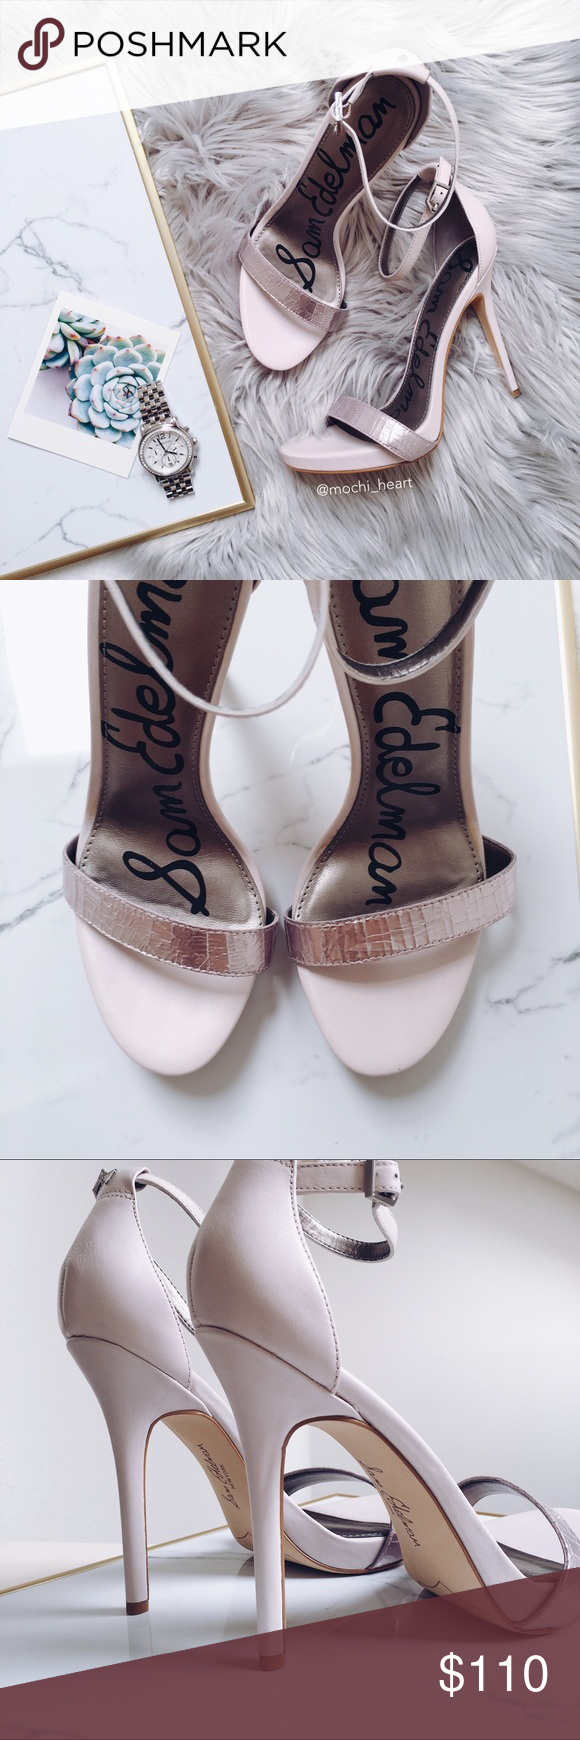 9f0fa6cccd19 Sam Edelman  Eleanor  pink powder leather sandal Chic sandals by Sam Edelman  in a pale pink and silver combo. Features 4 1 2